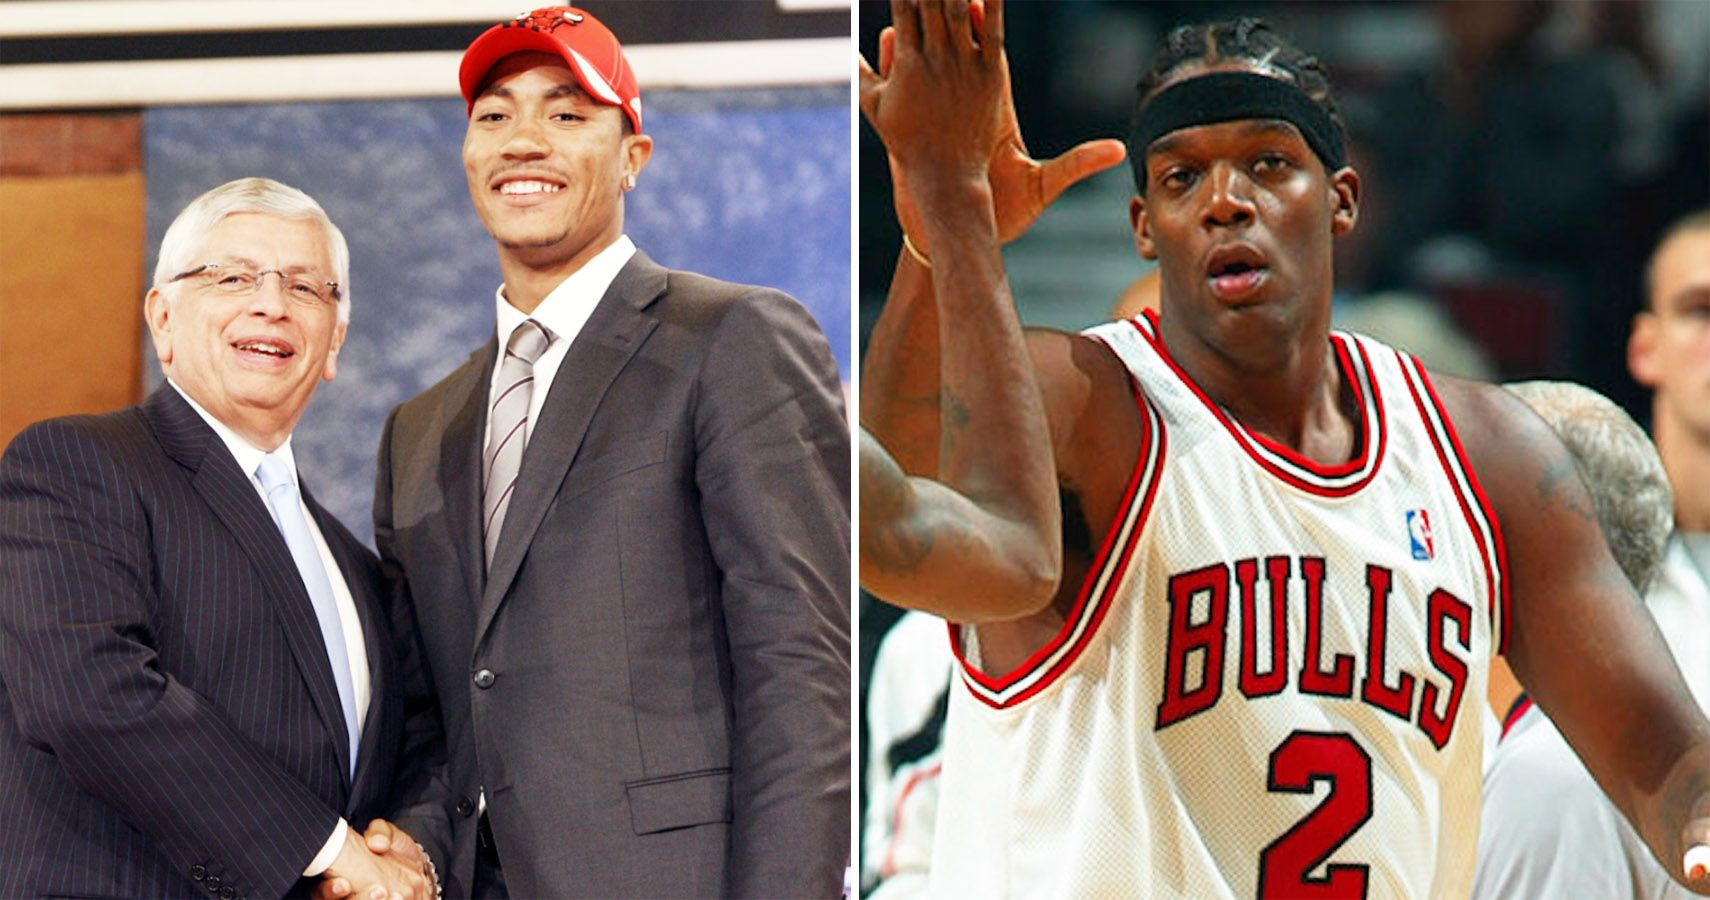 bb087677c032 The 10 Best And 10 Worst Draft Choices By The Chicago Bulls